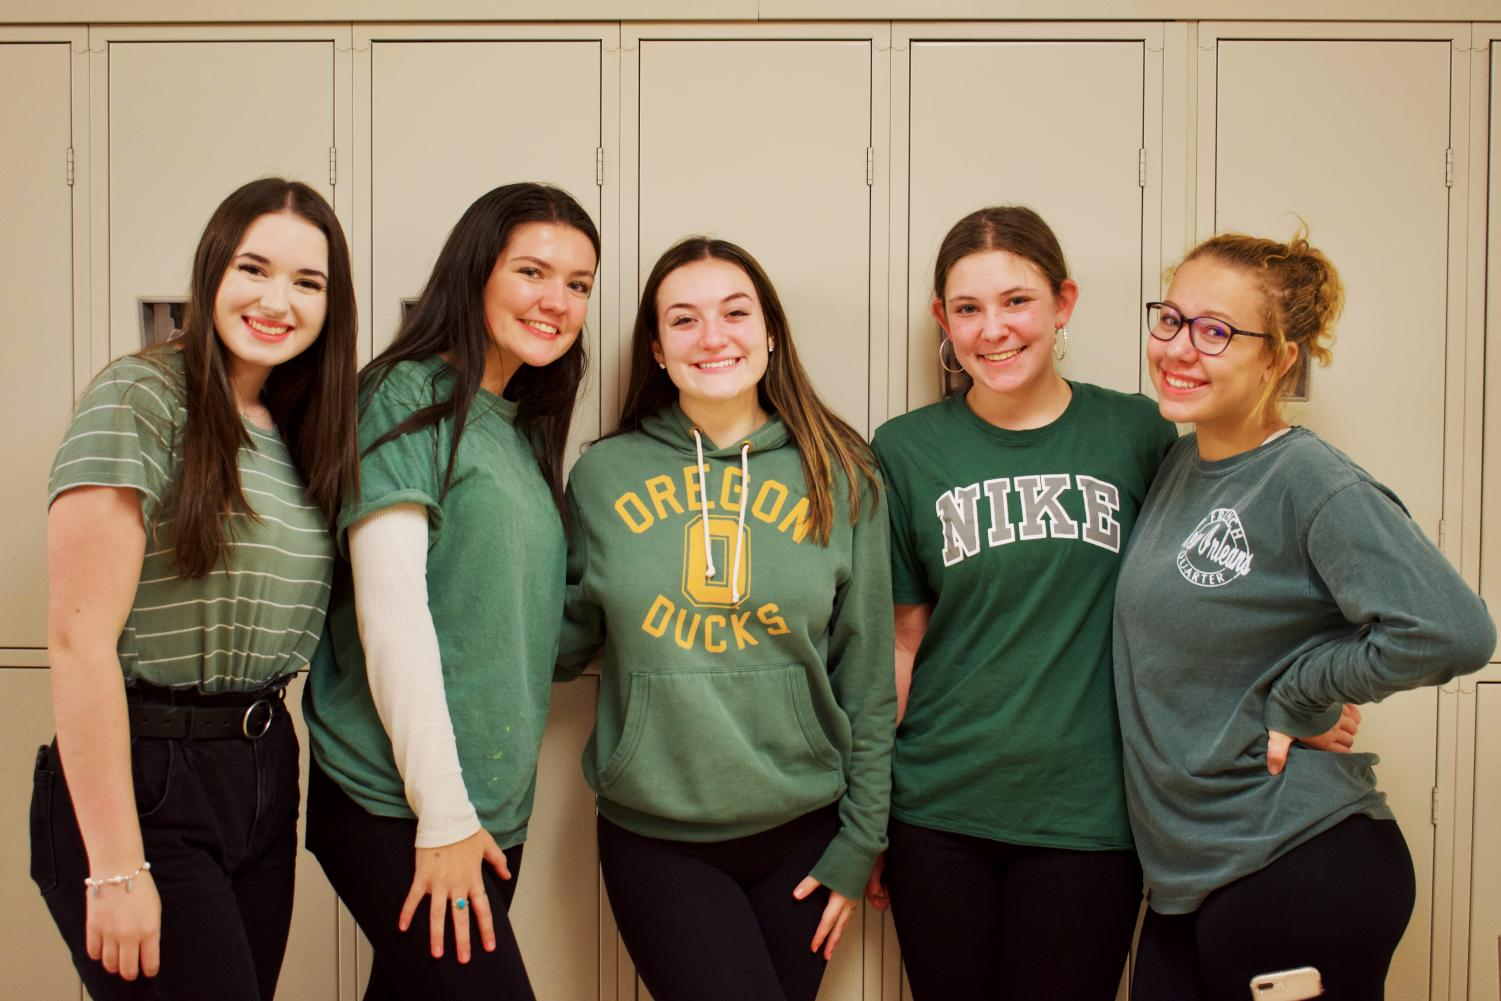 Seniors+show+off+their+green+shirts+to+represent+the+class+of+2020+on+class+colors+day.